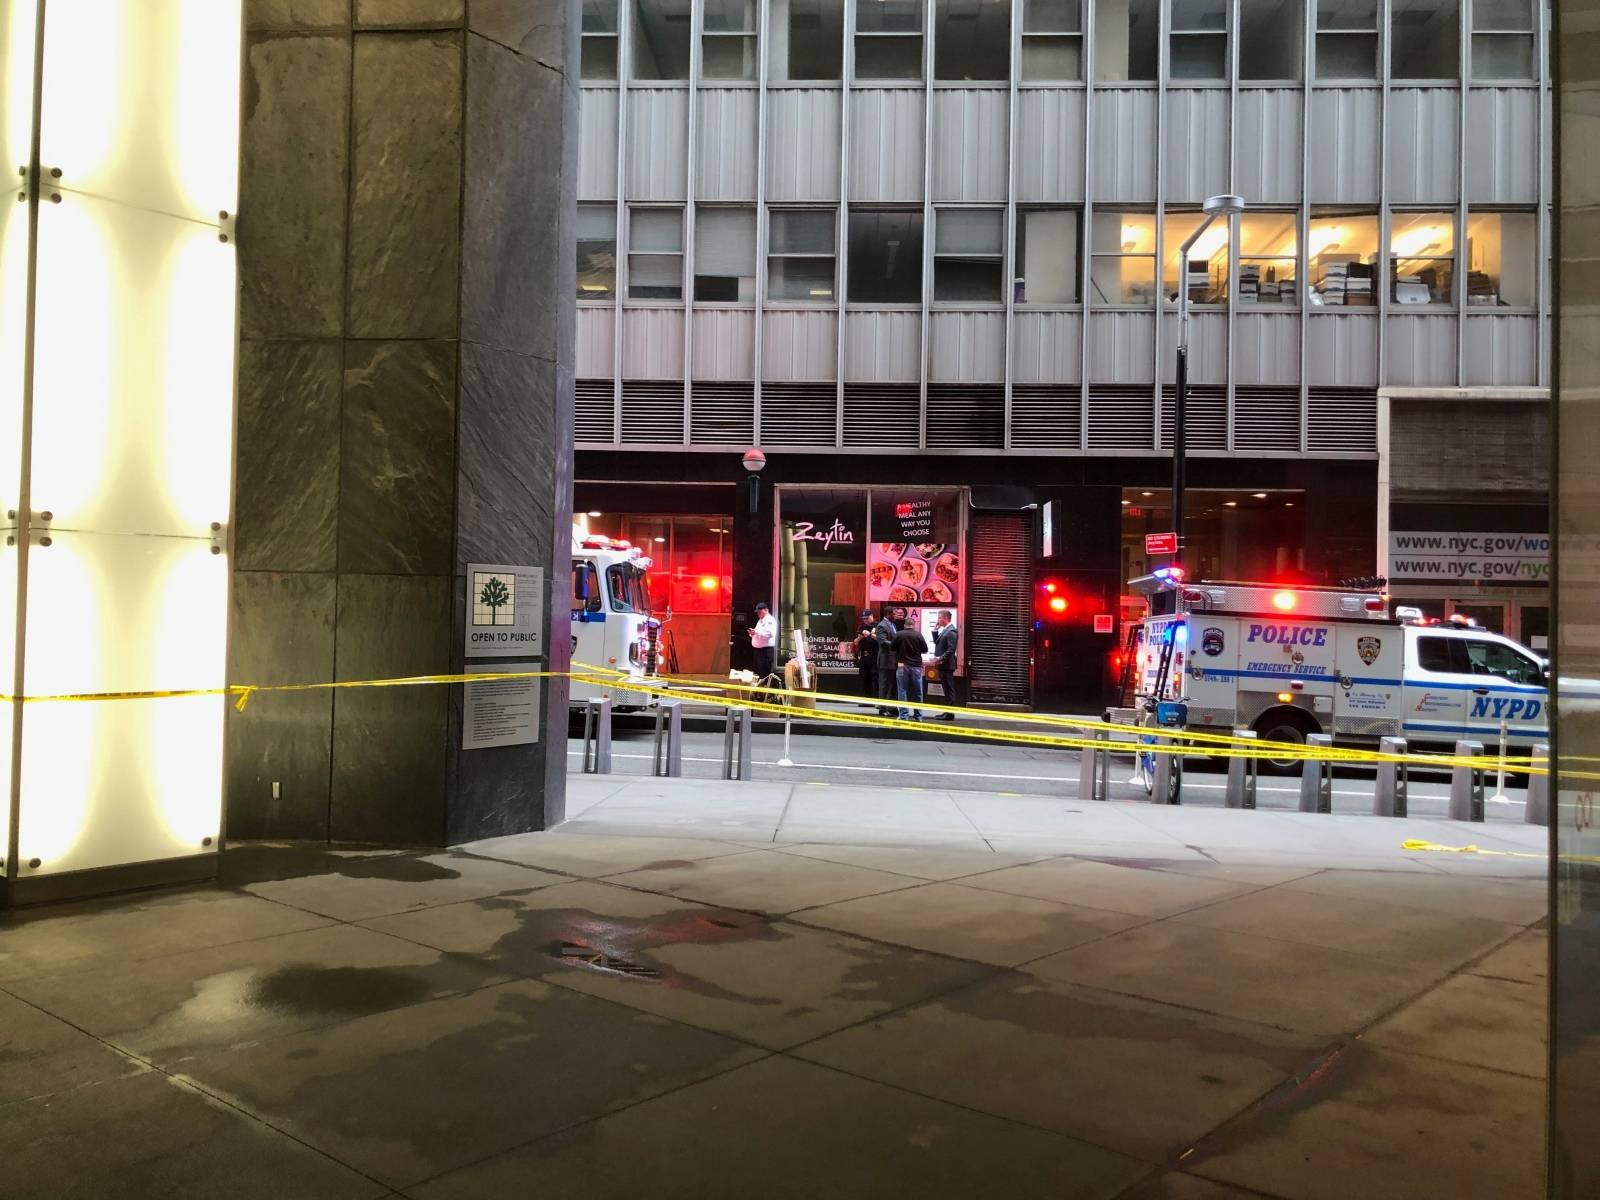 NYPD vehicles are seen in a restricted area after an incident at the Fulton St. subway station in Manhattan, New York